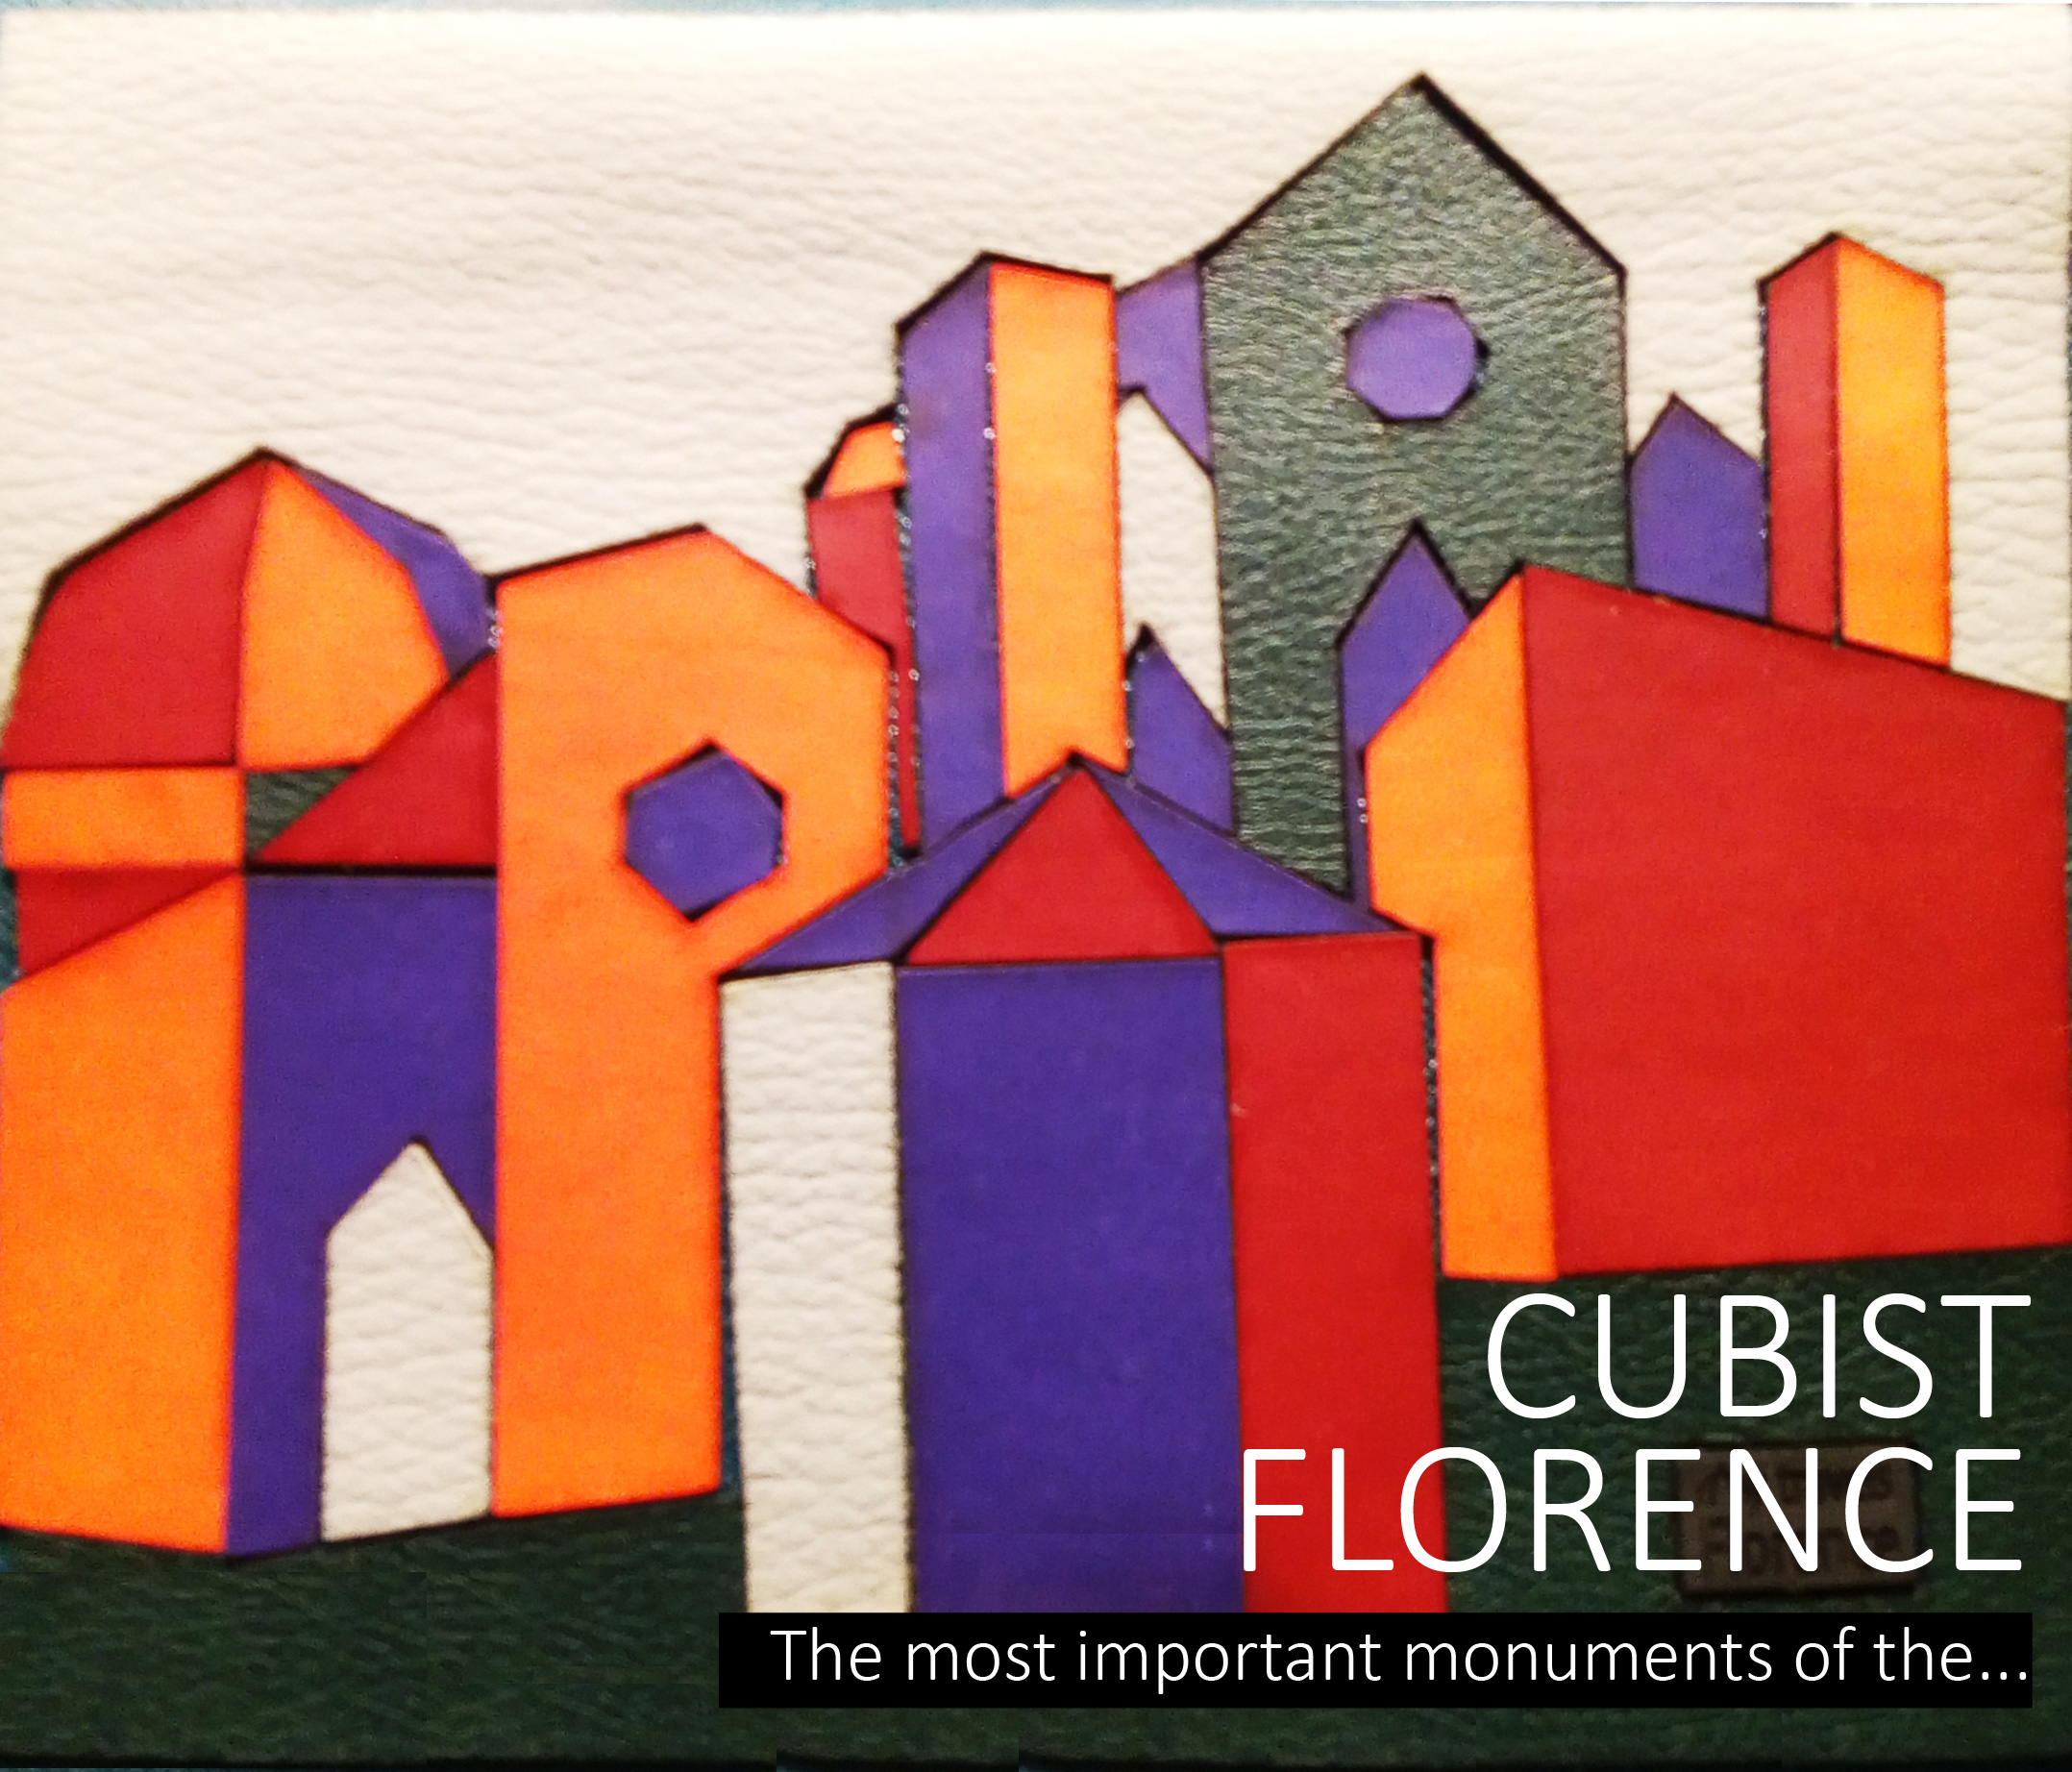 Cubist Florence